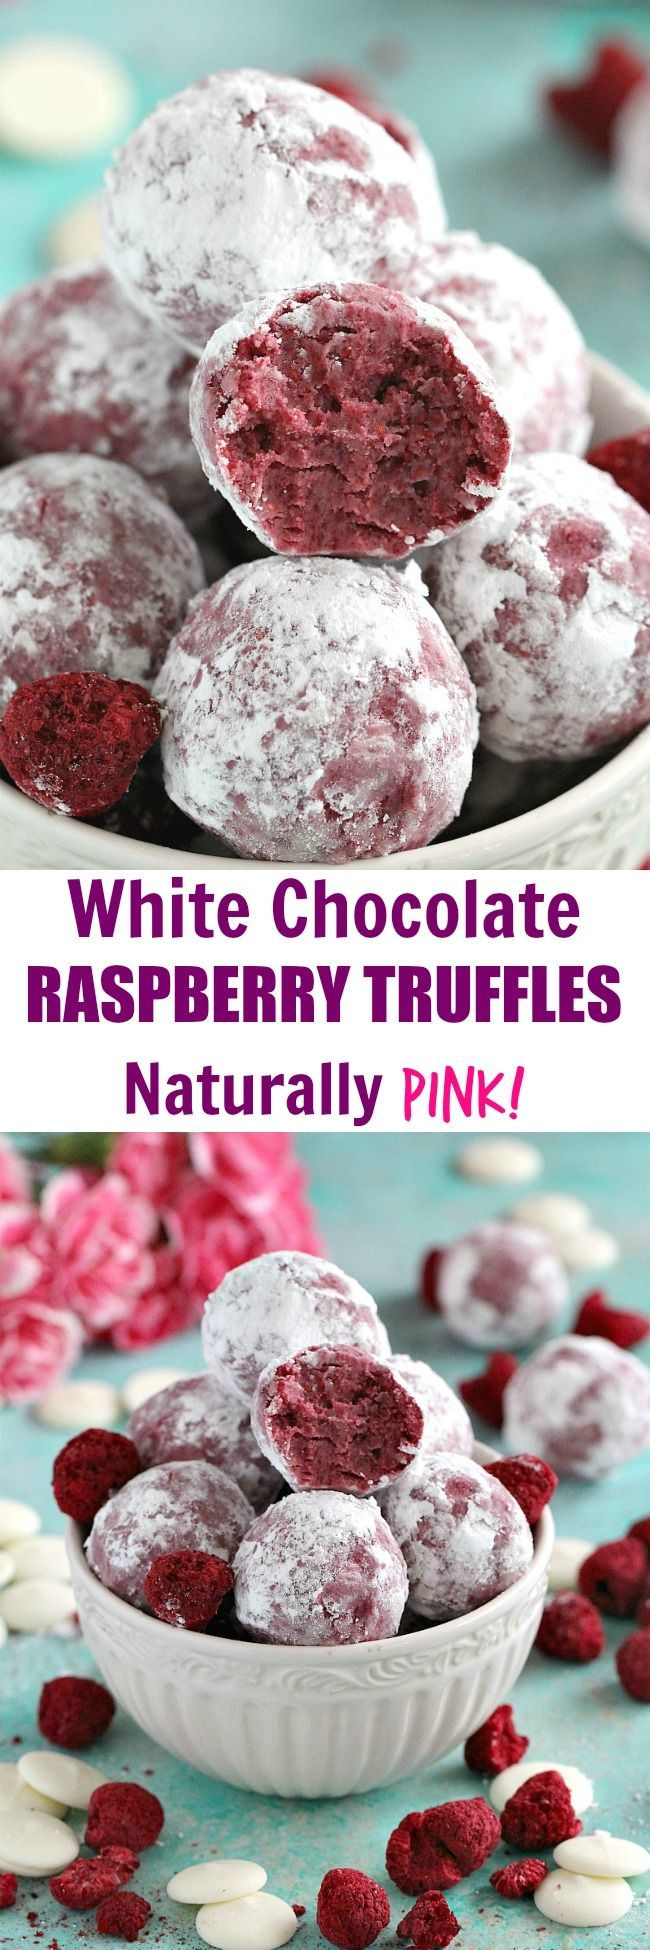 5 ingredients only, these White Chocolate Raspberry Truffles are very easy to make, full of flavor, gluten free and have a natural pink color!